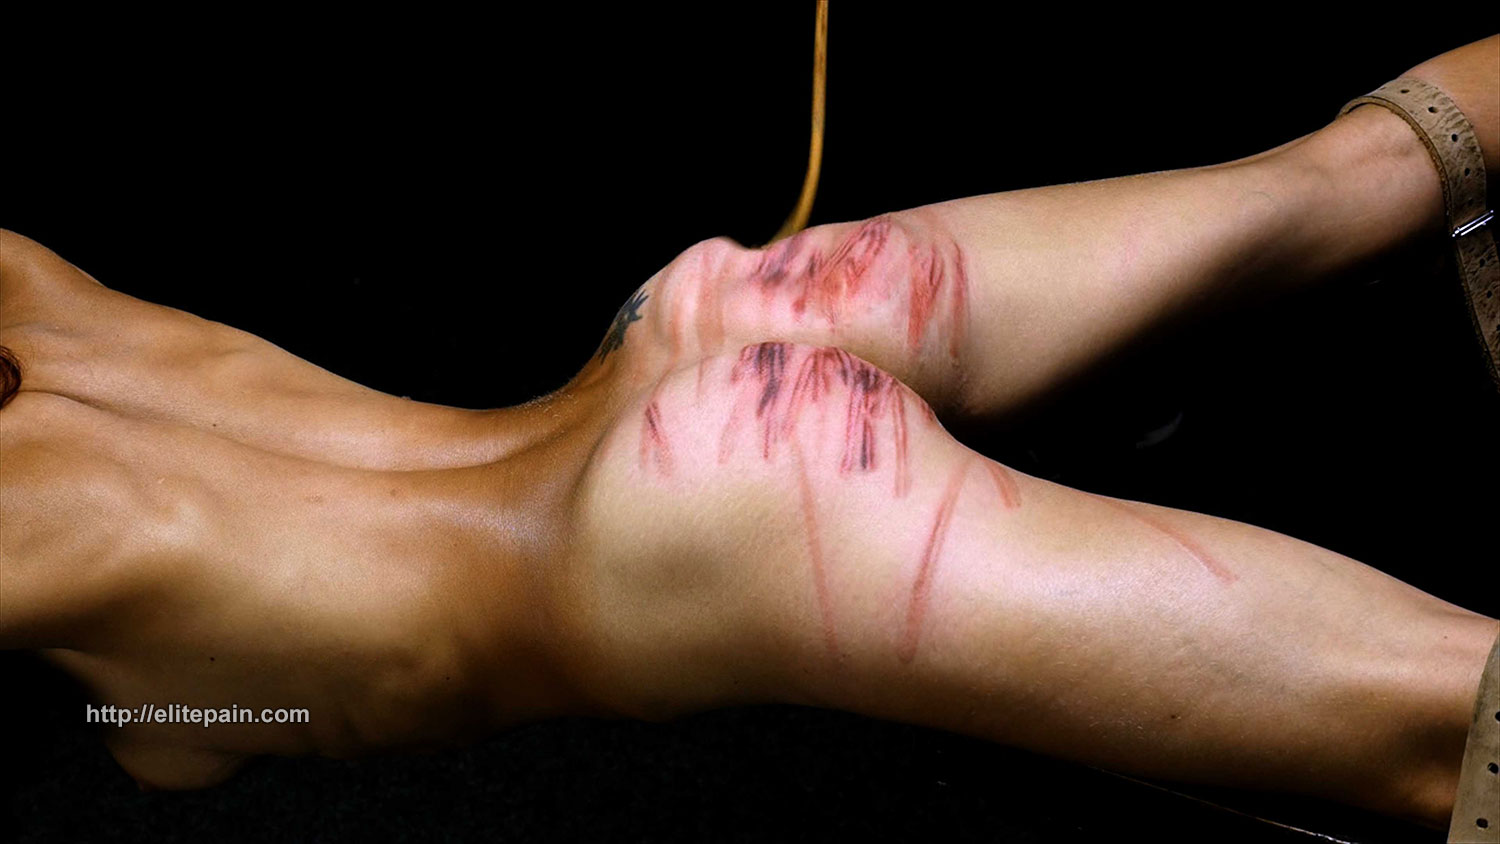 Bdsm extreme torture pain nipples male